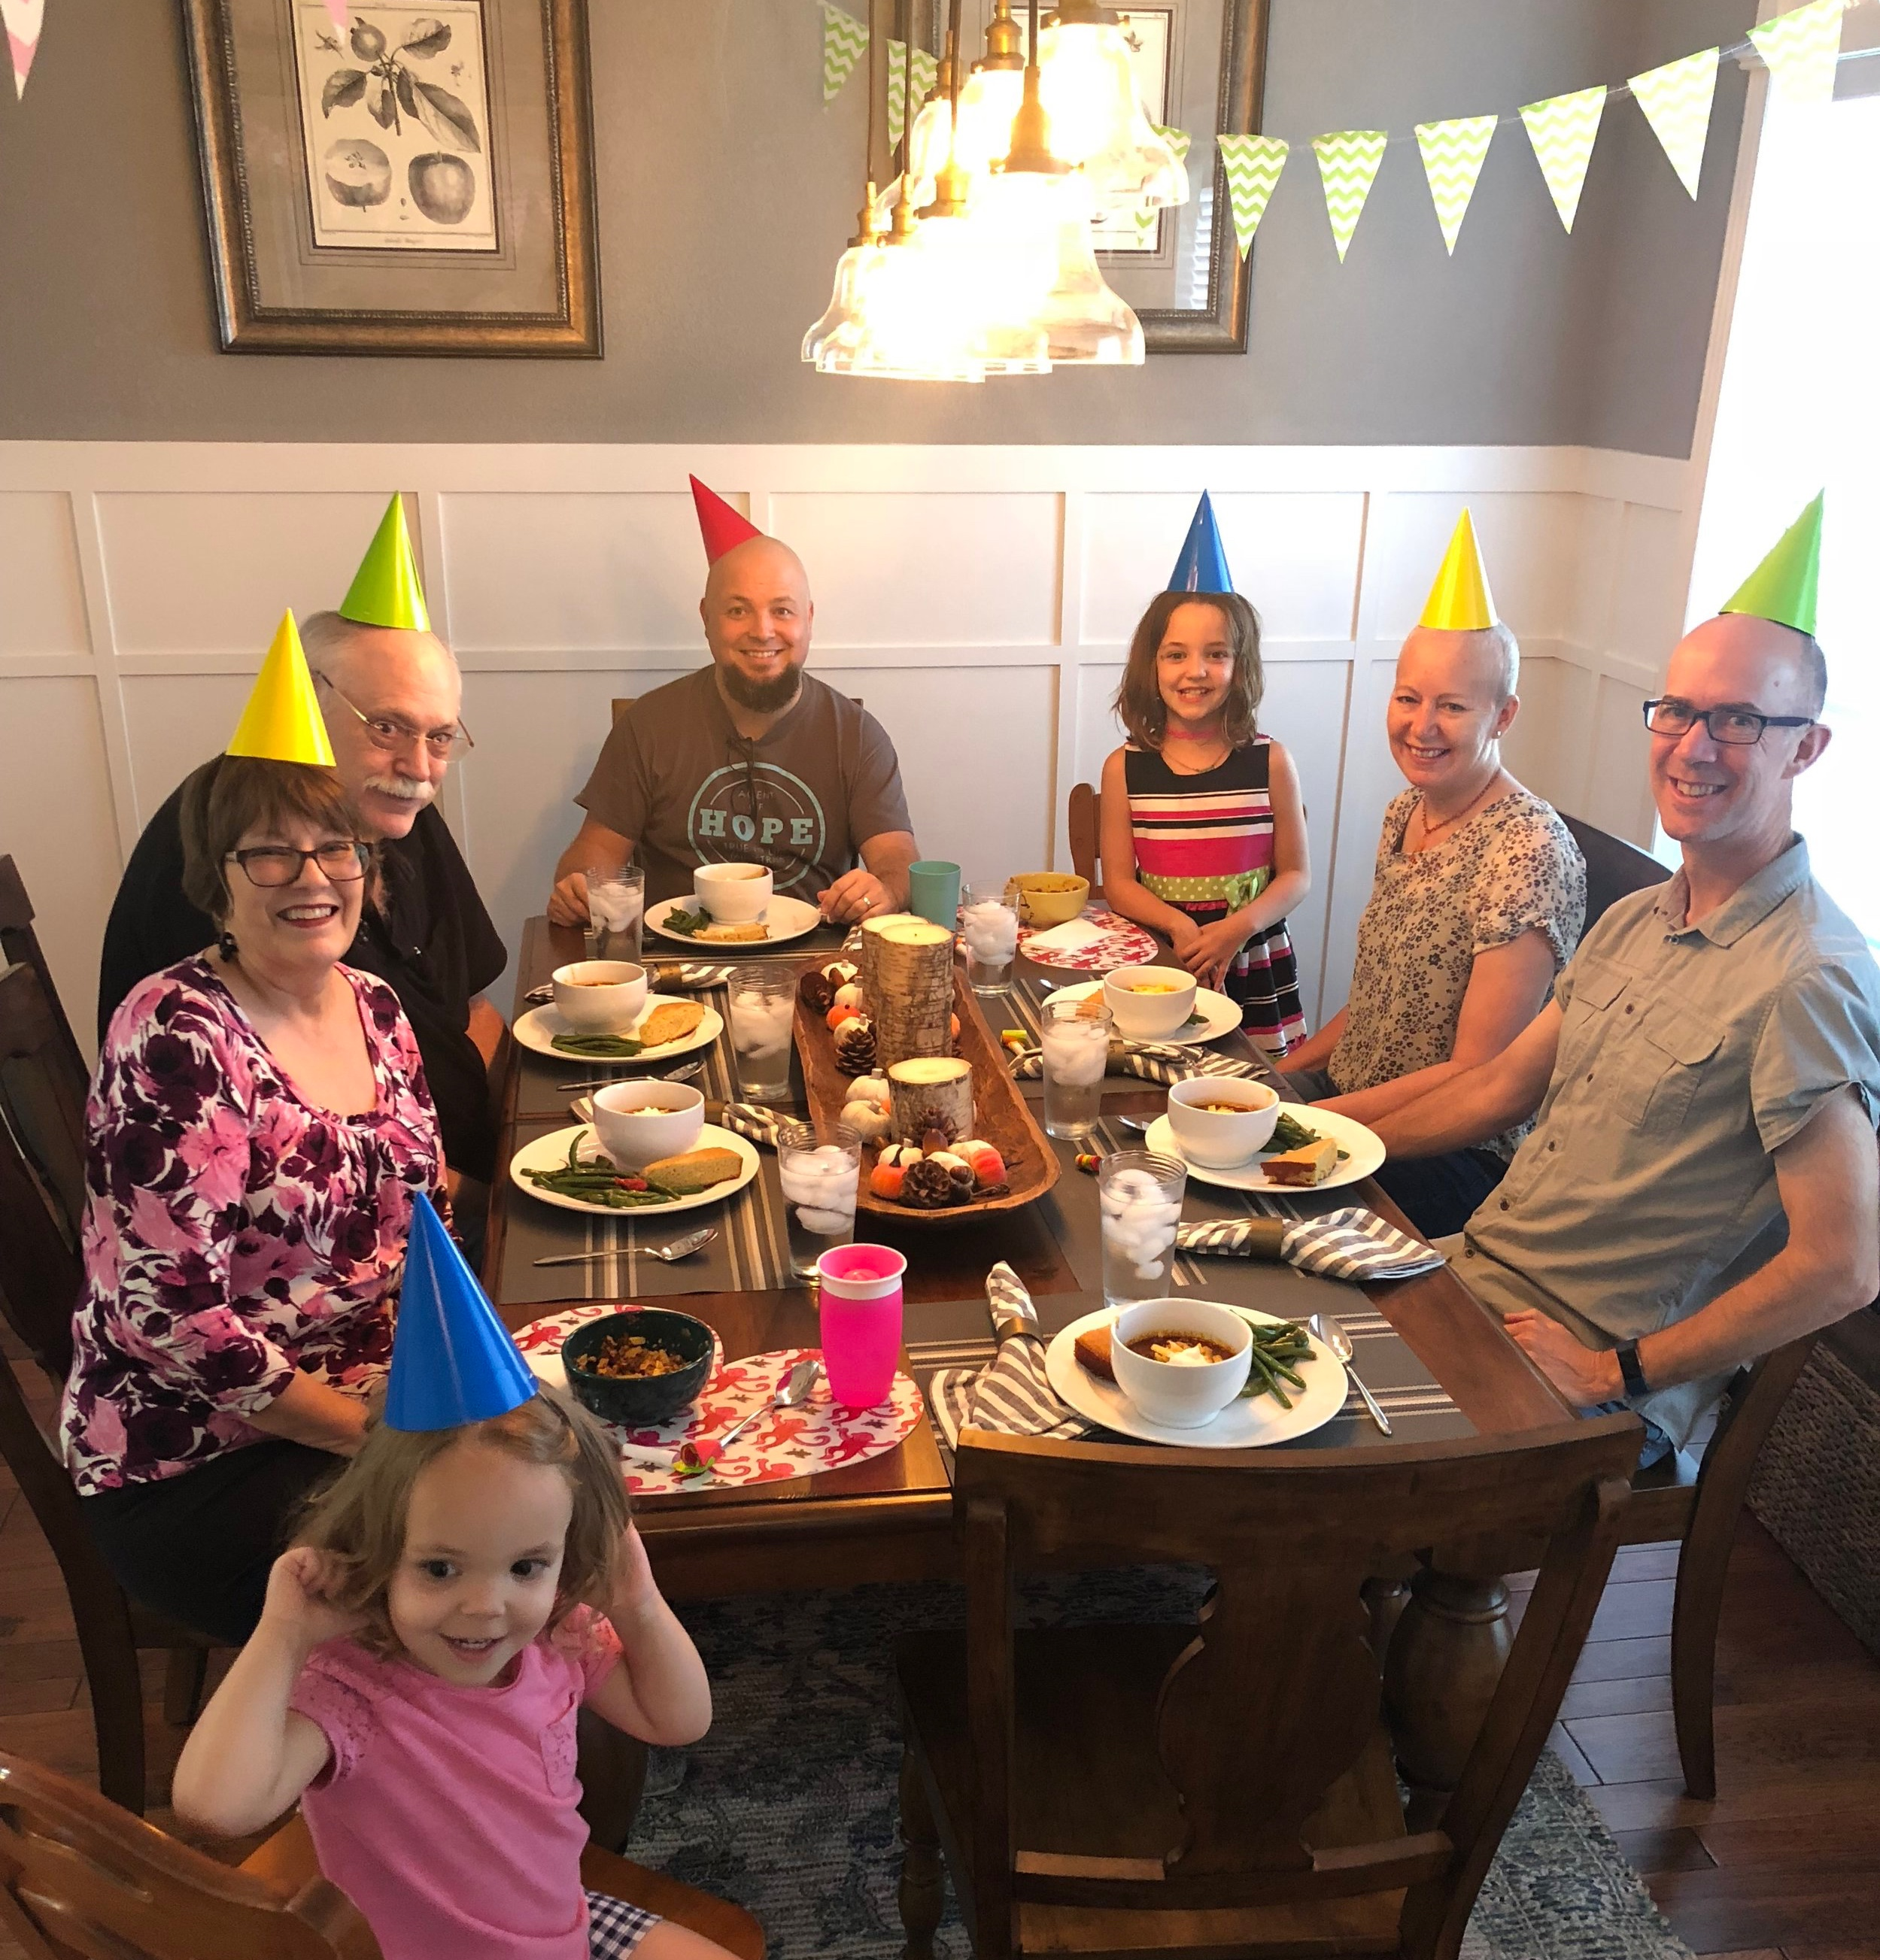 """Celebrating our dear friend's """"Cancer Free"""" report - you can probably guess the HIGHS from this dinner!"""